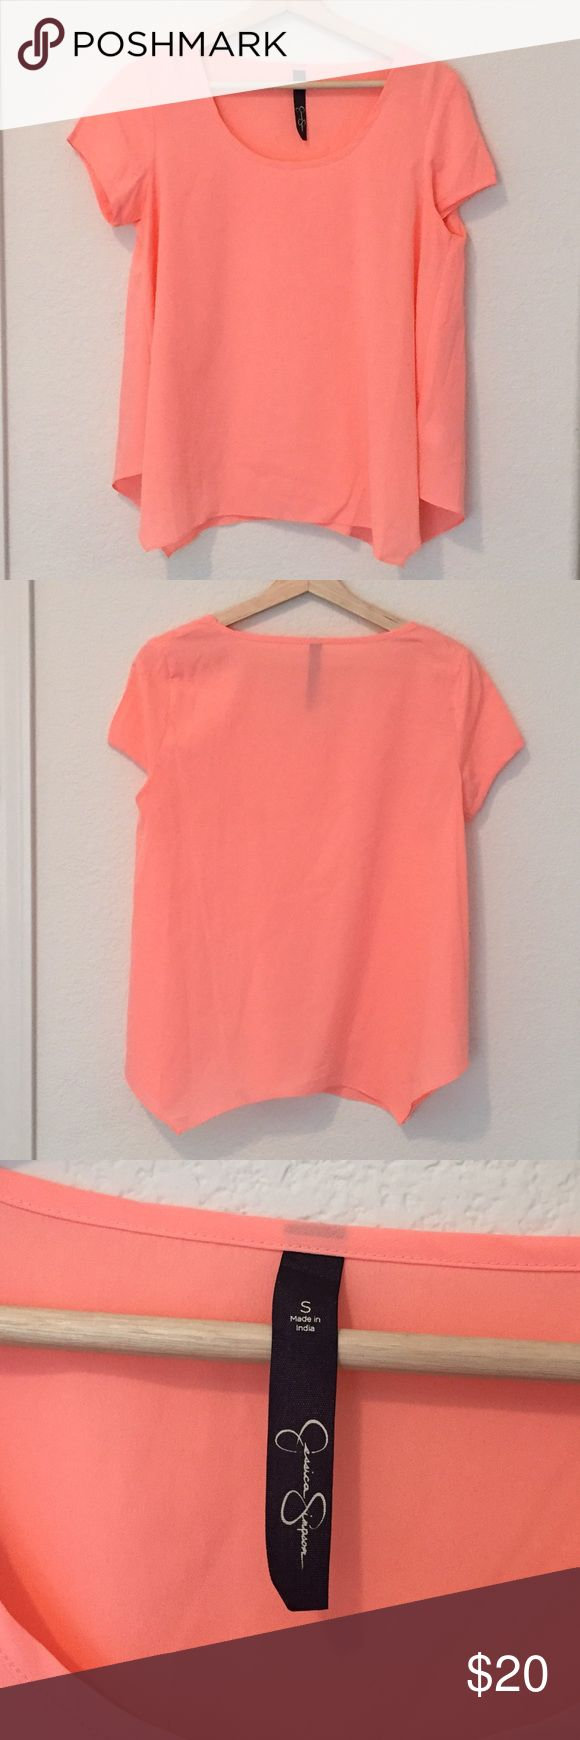 Jessica Simpson | Neon Coral Blouse This is an adorable blouse! It's in great condition. It's a small but fits more like a medium. It's too big on me. My loss, your gain! Please let me know if you have any questions. From smoke-free home. 💋 Jessica Simpson Tops Blouses